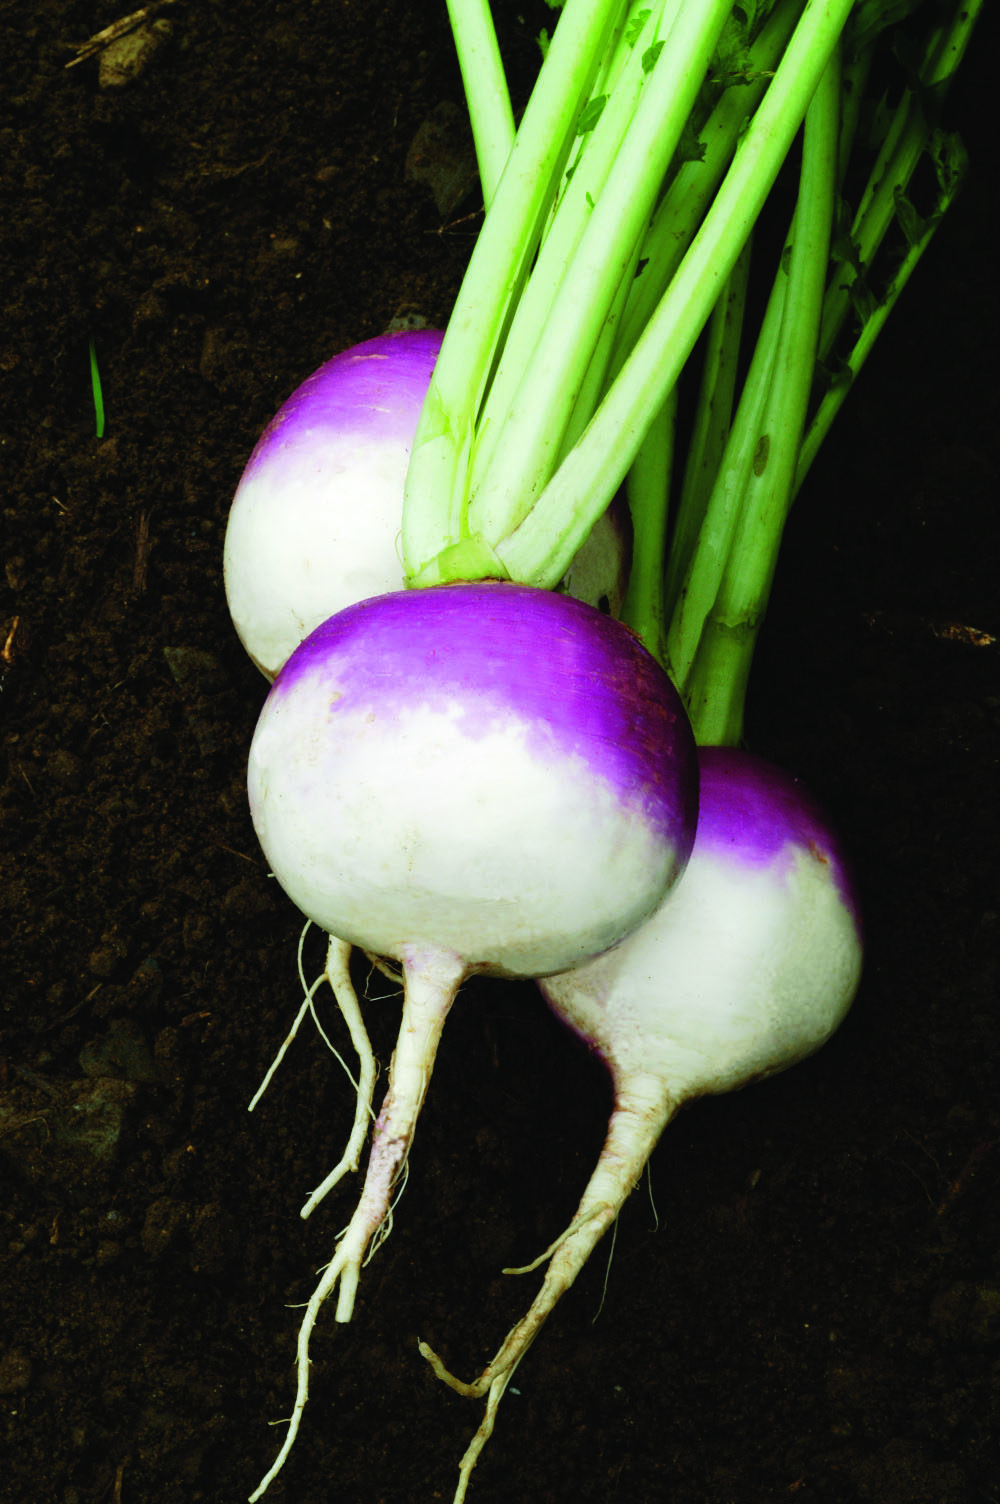 Purple Top White Globe Turnip